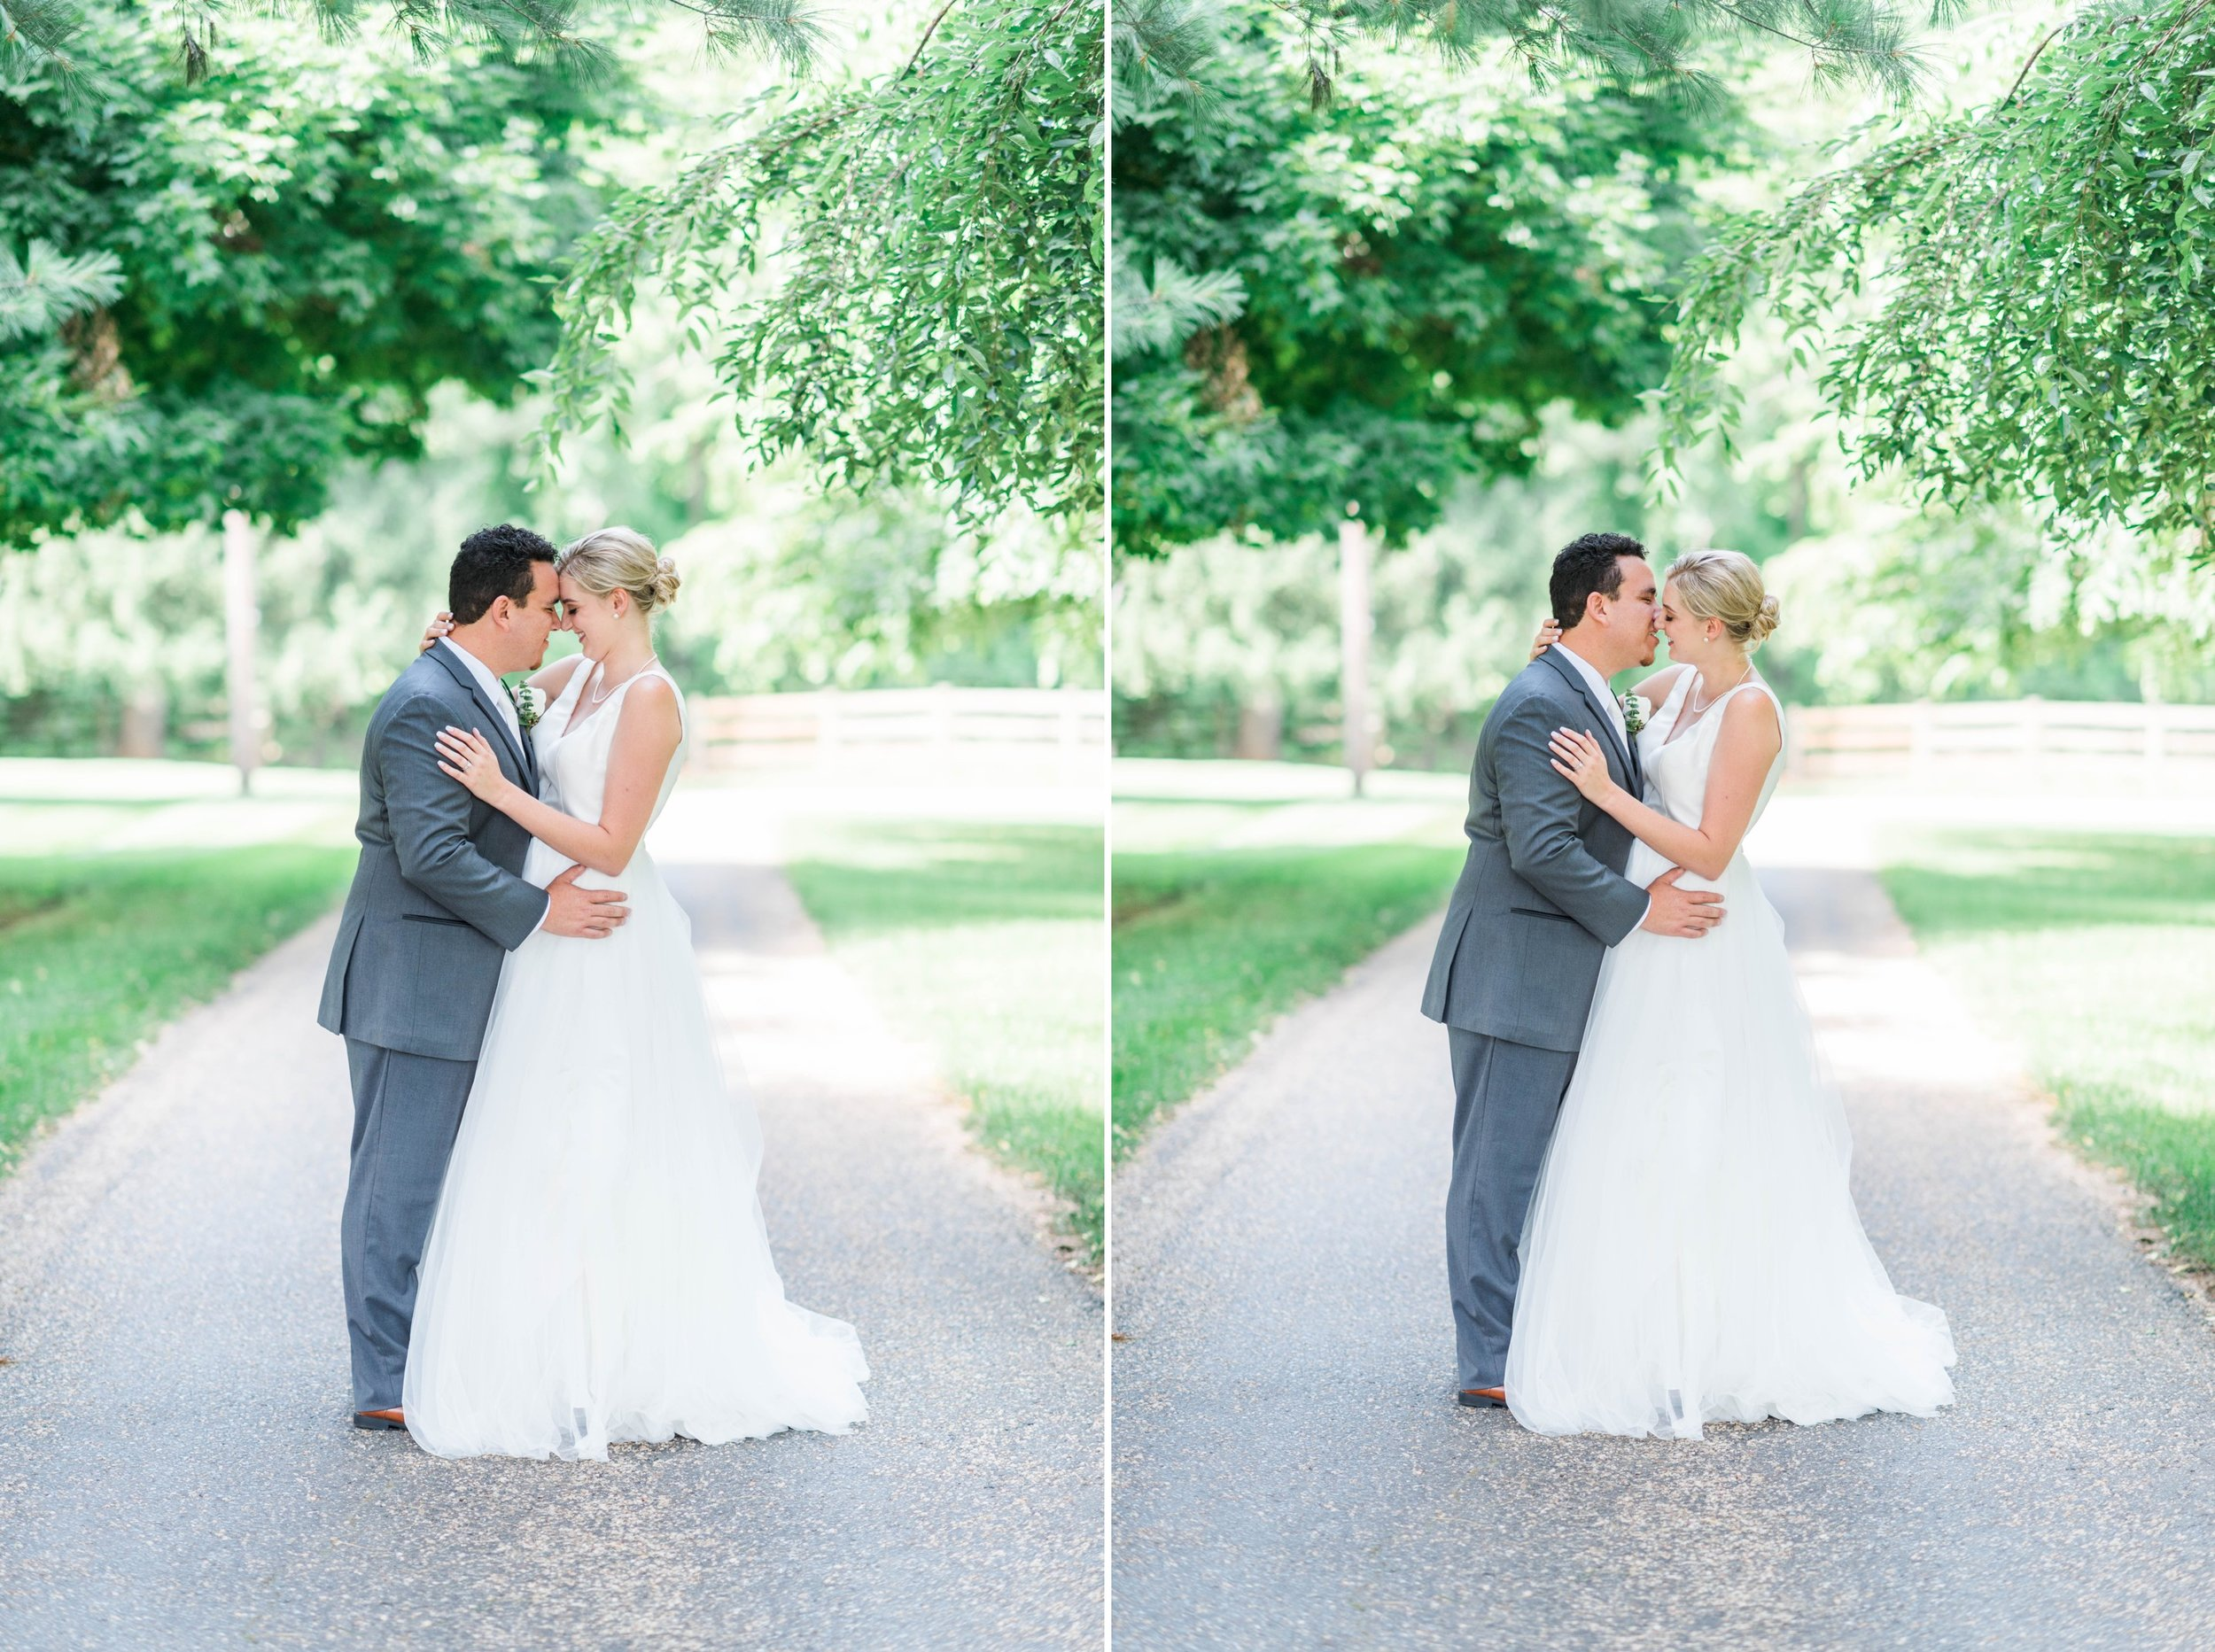 westmanorestate_entwinedevents_lynchburgweddingphotographer_Virginiaweddingphotographer_kateyam 49.jpg